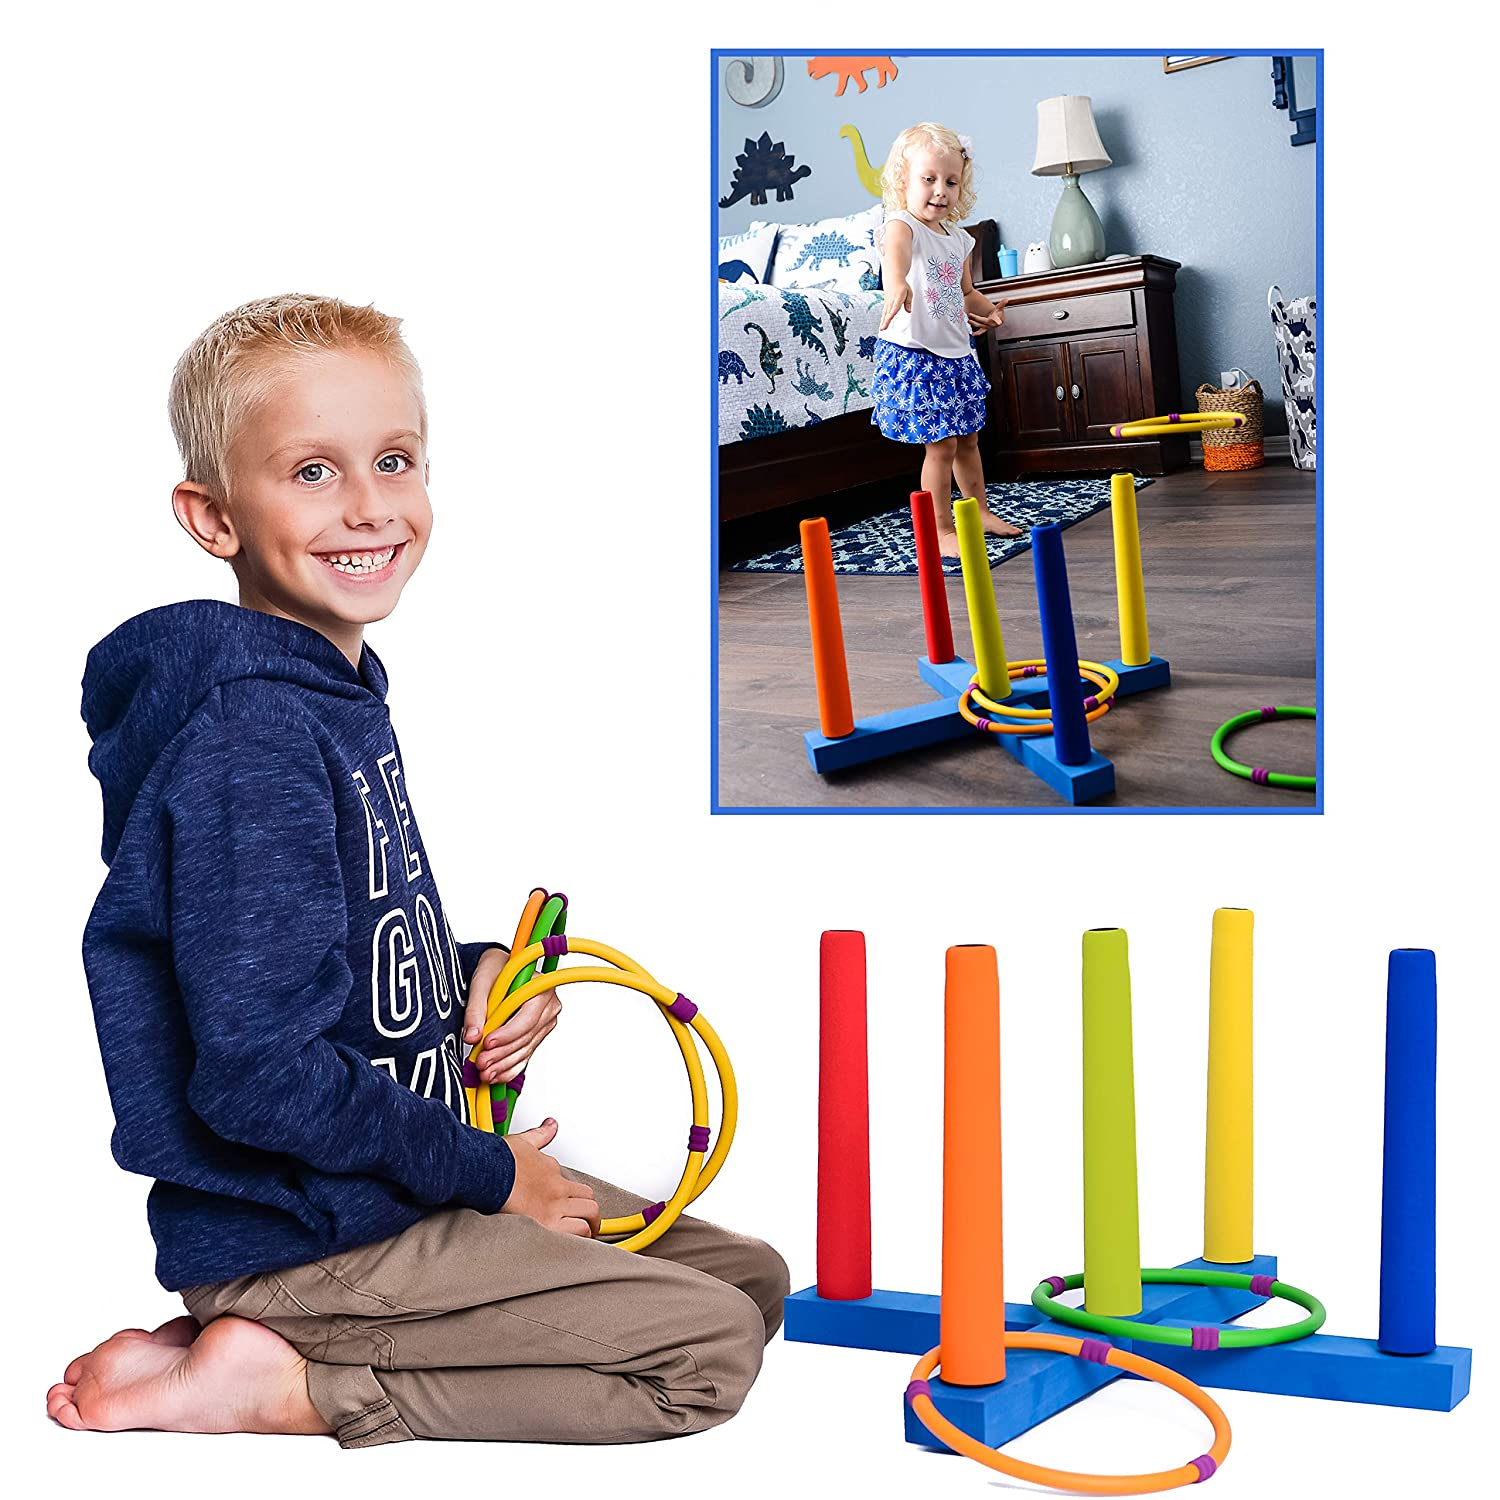 Kiddie Play Ring Toss Game for Kids Hoopla Game with 6 Rings